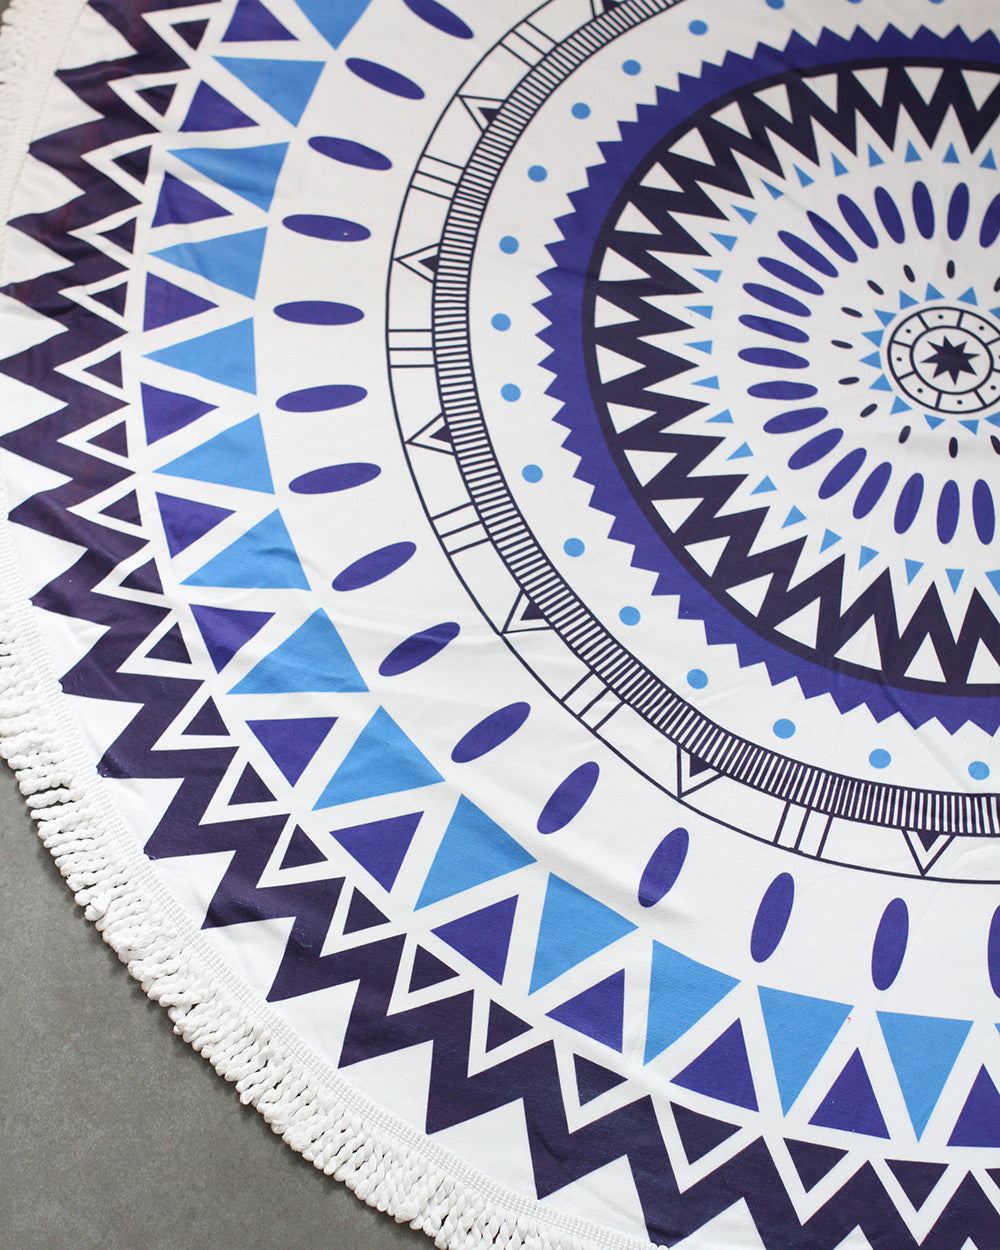 Bohemian Beach Tapestry Mandala Hippie Throw Towel-Blue - worthtryit.com